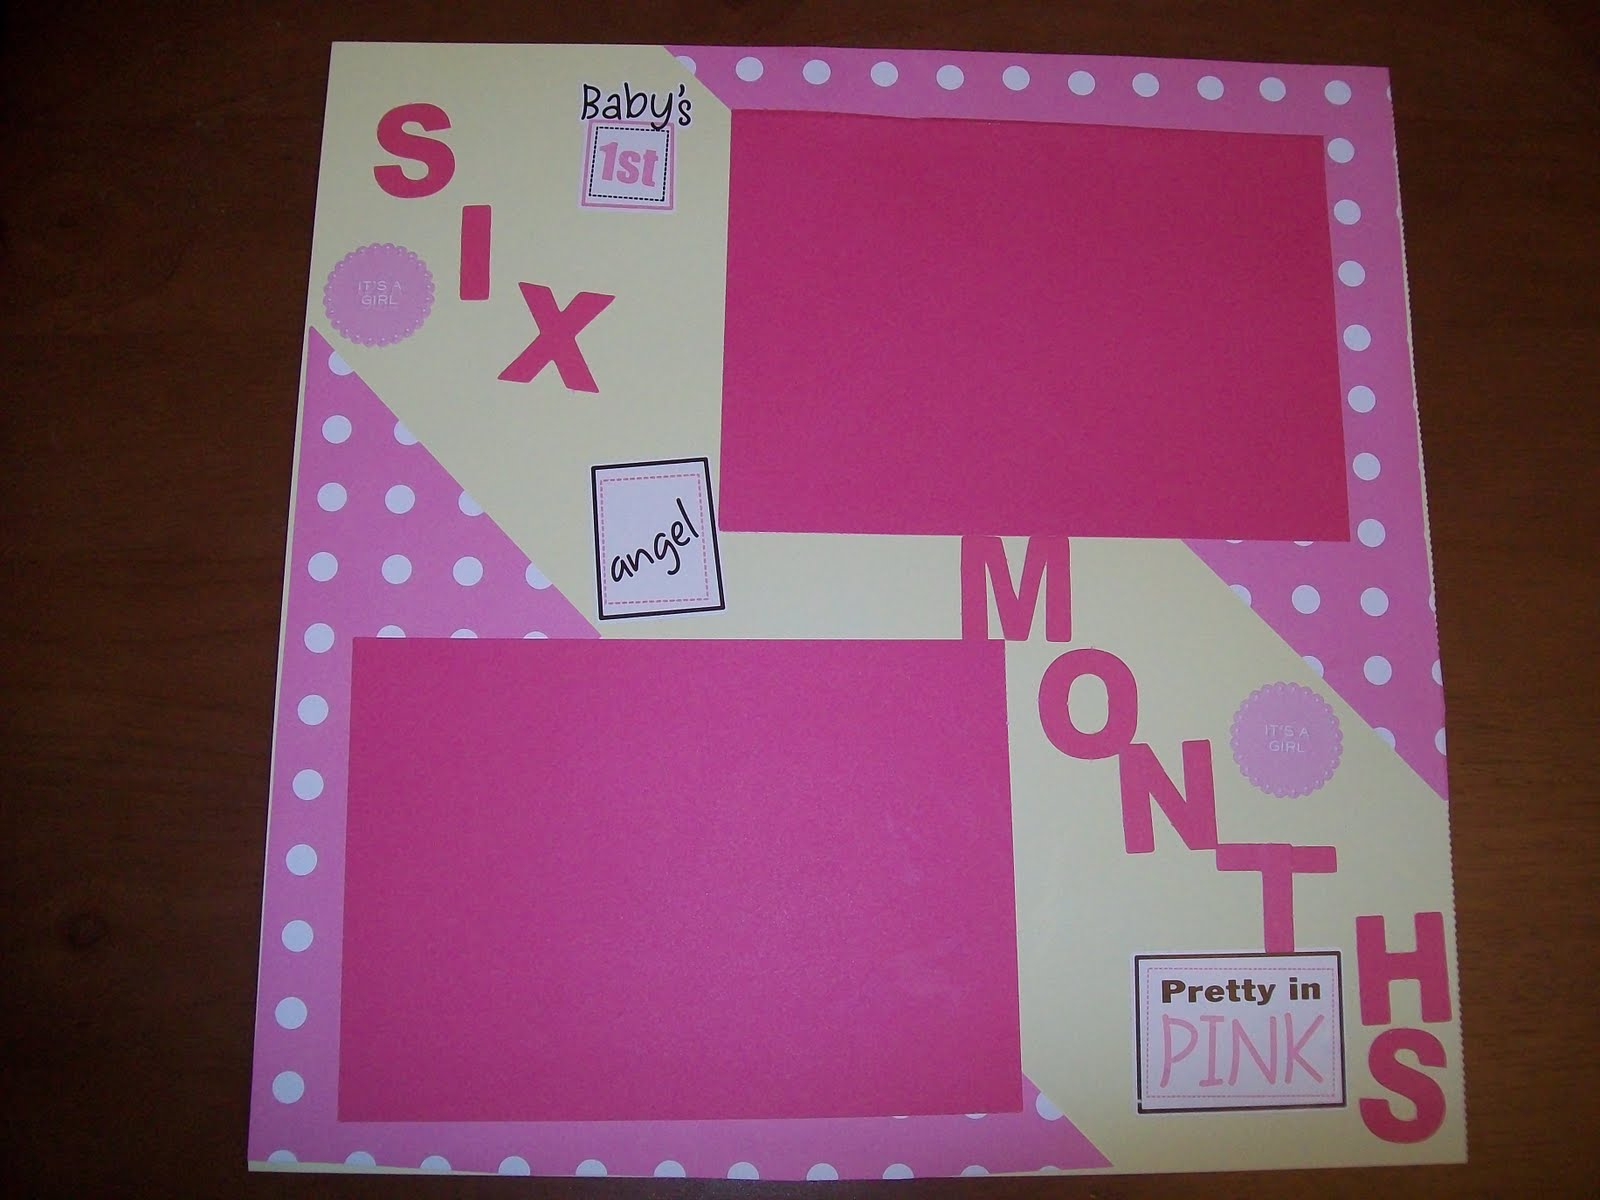 Scrapbook ideas for baby girl - Here Are Photos Of Pages Of A Pre Made Baby Girl Scrapbook That I Made For A Gift